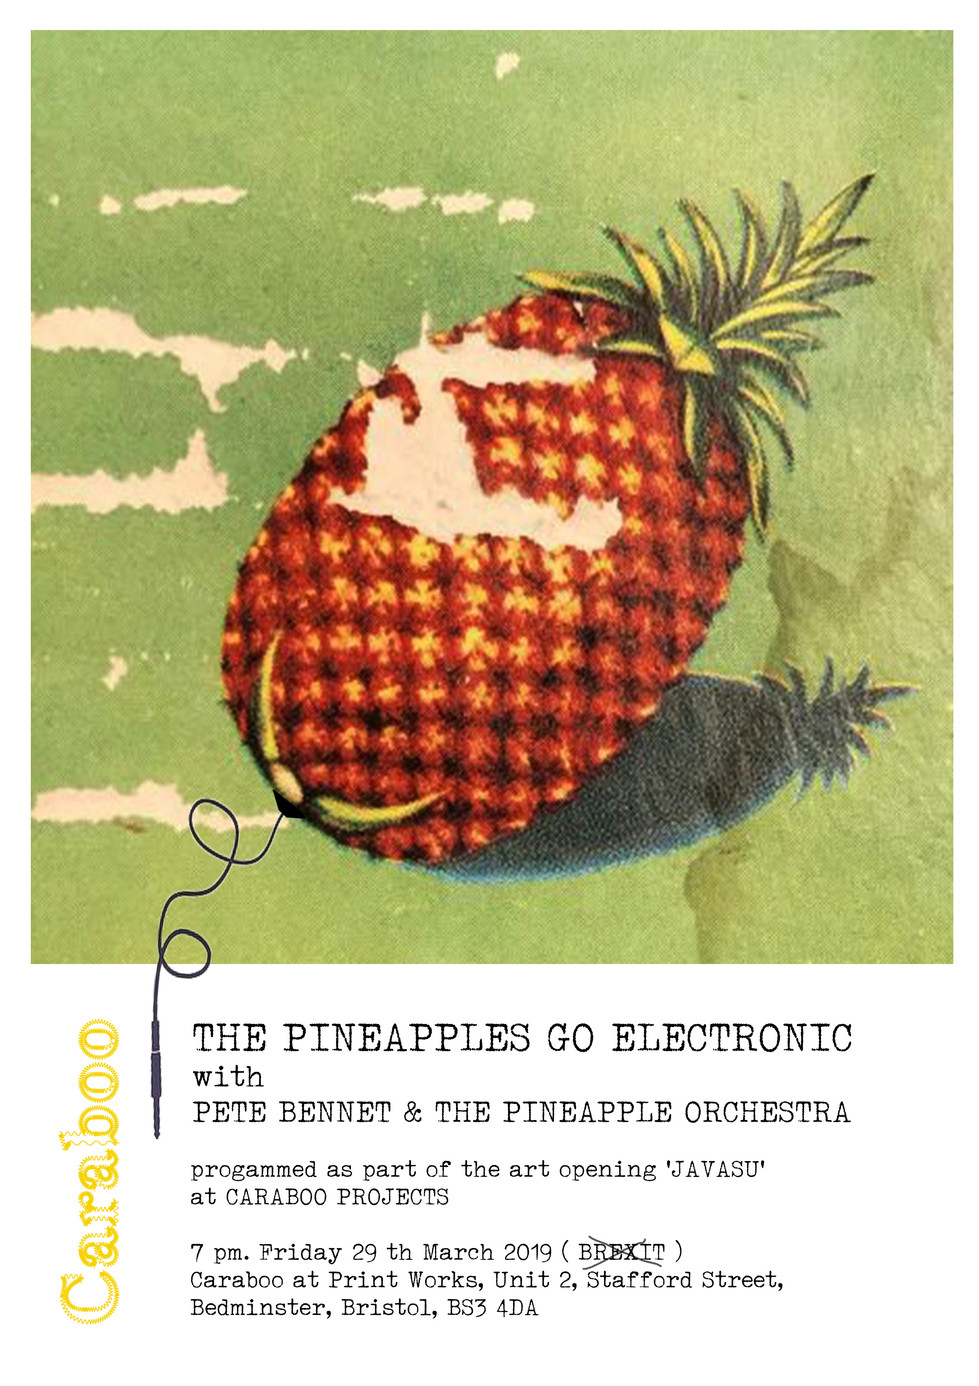 The Pineapples go Electronic